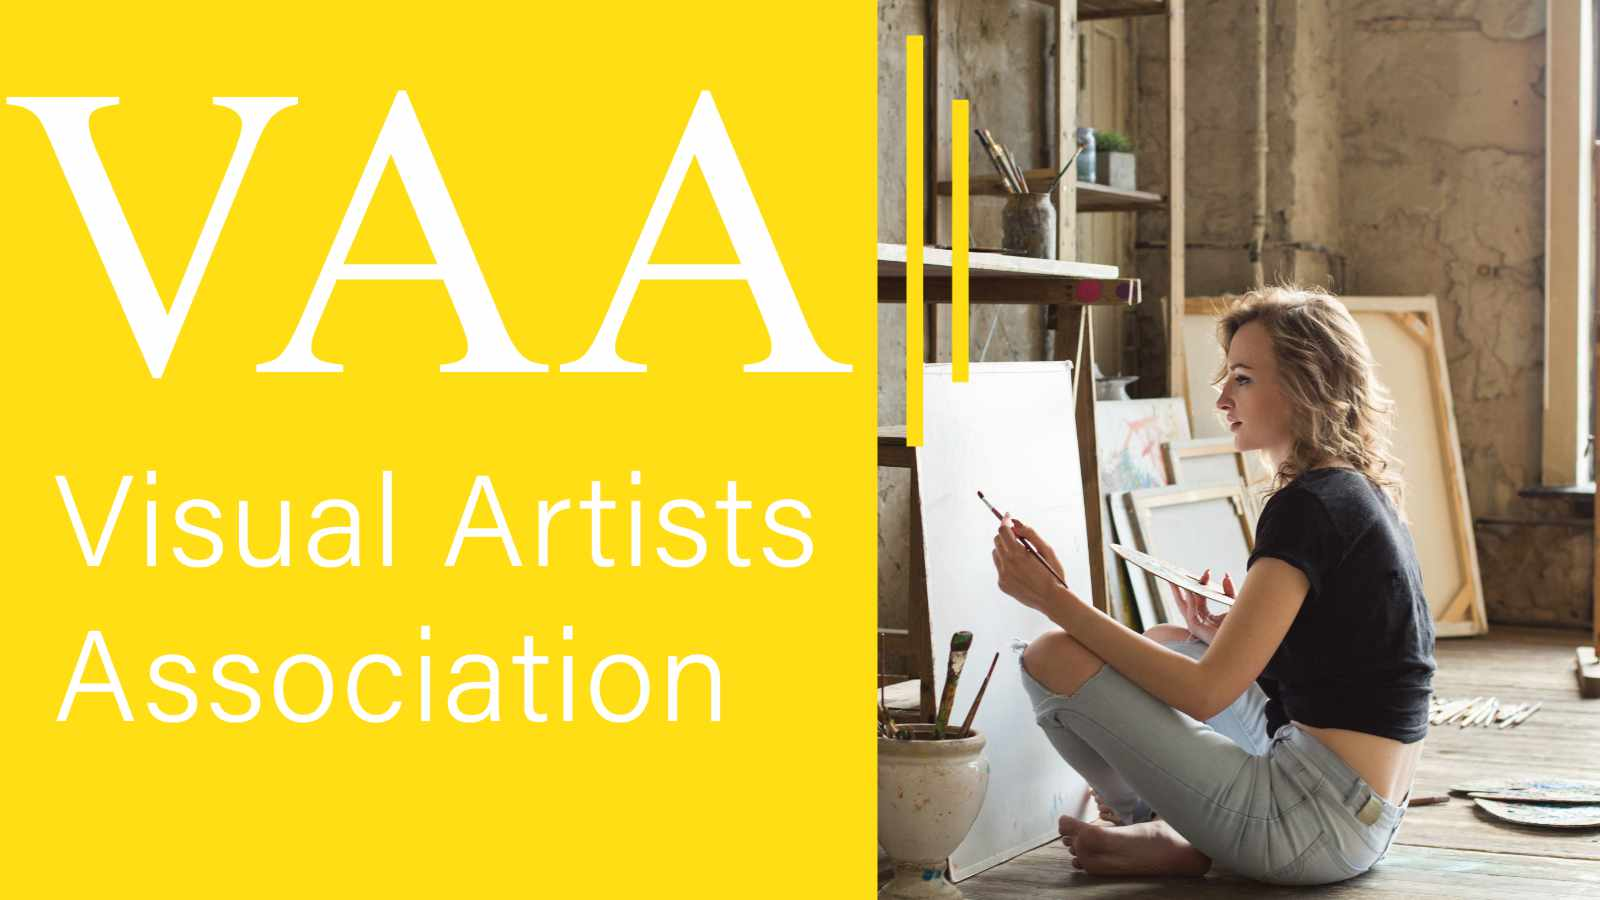 The Visual Artists Association Award